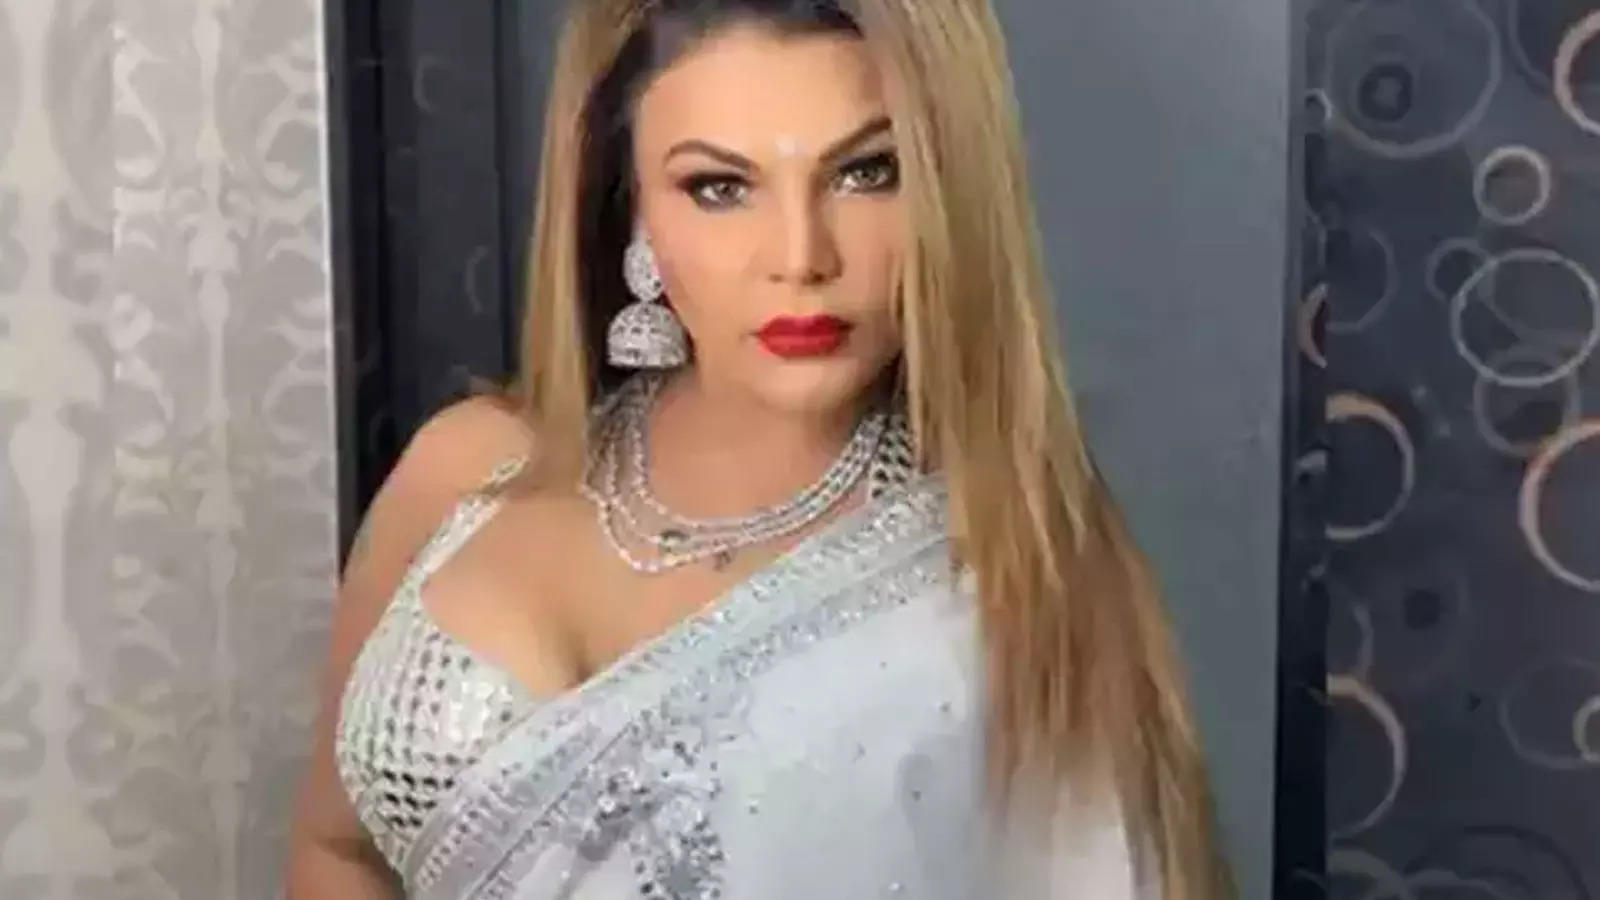 rakhi-sawant-gets-trolled-for-her-recent-comparison-to-kim-kardashian-heres-why